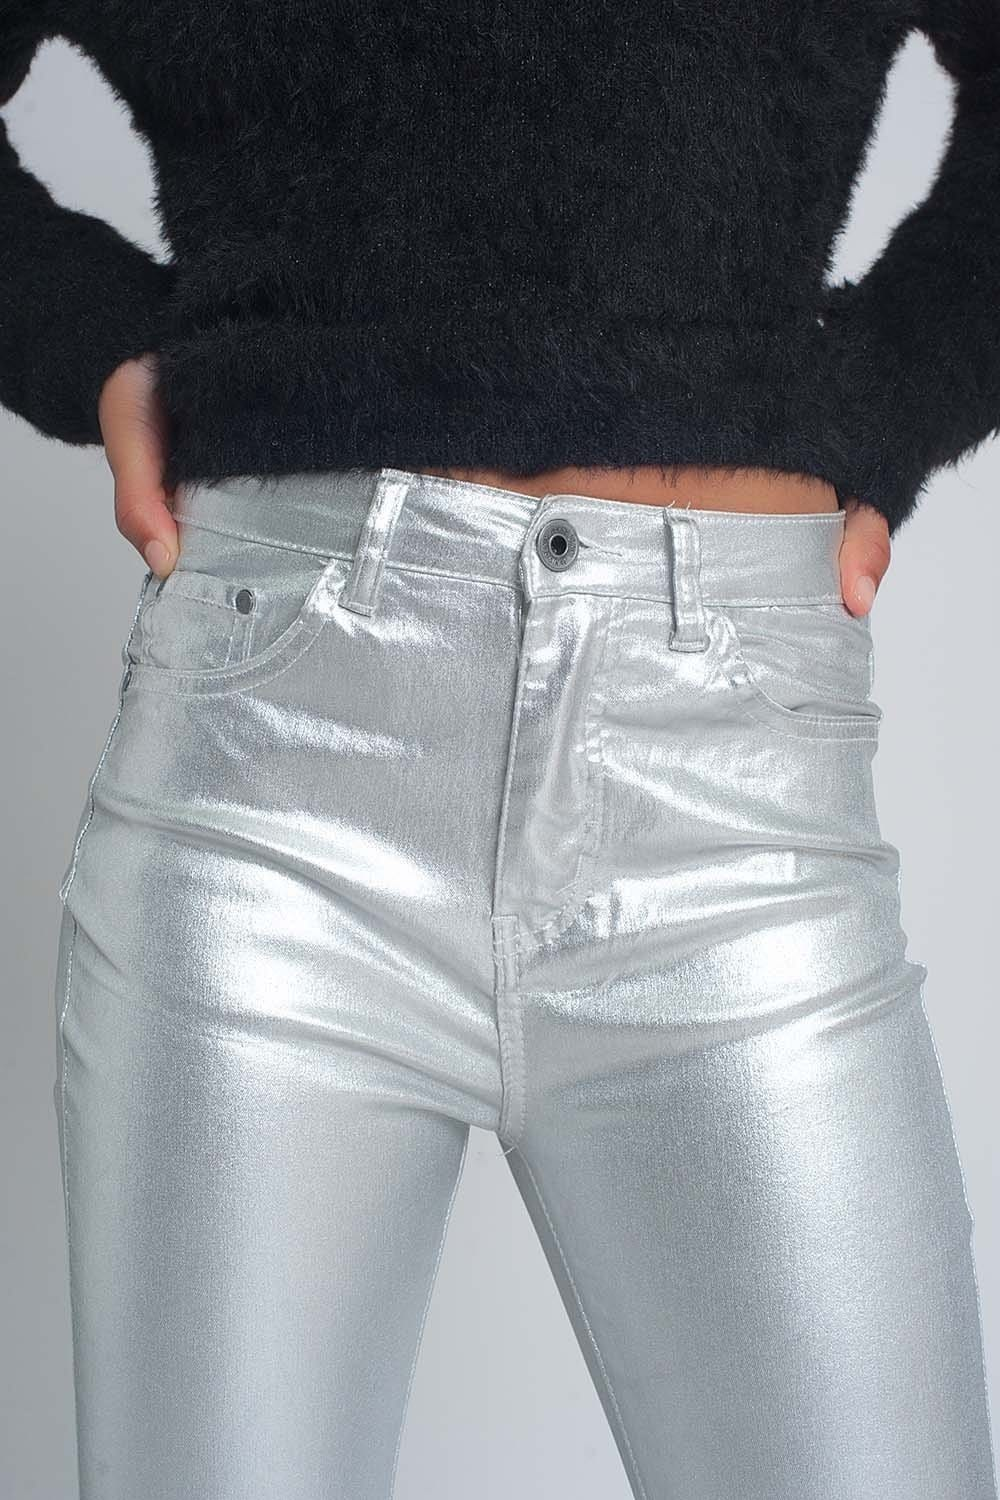 Skinny Pants in Silver Metallic - Himelhoch's